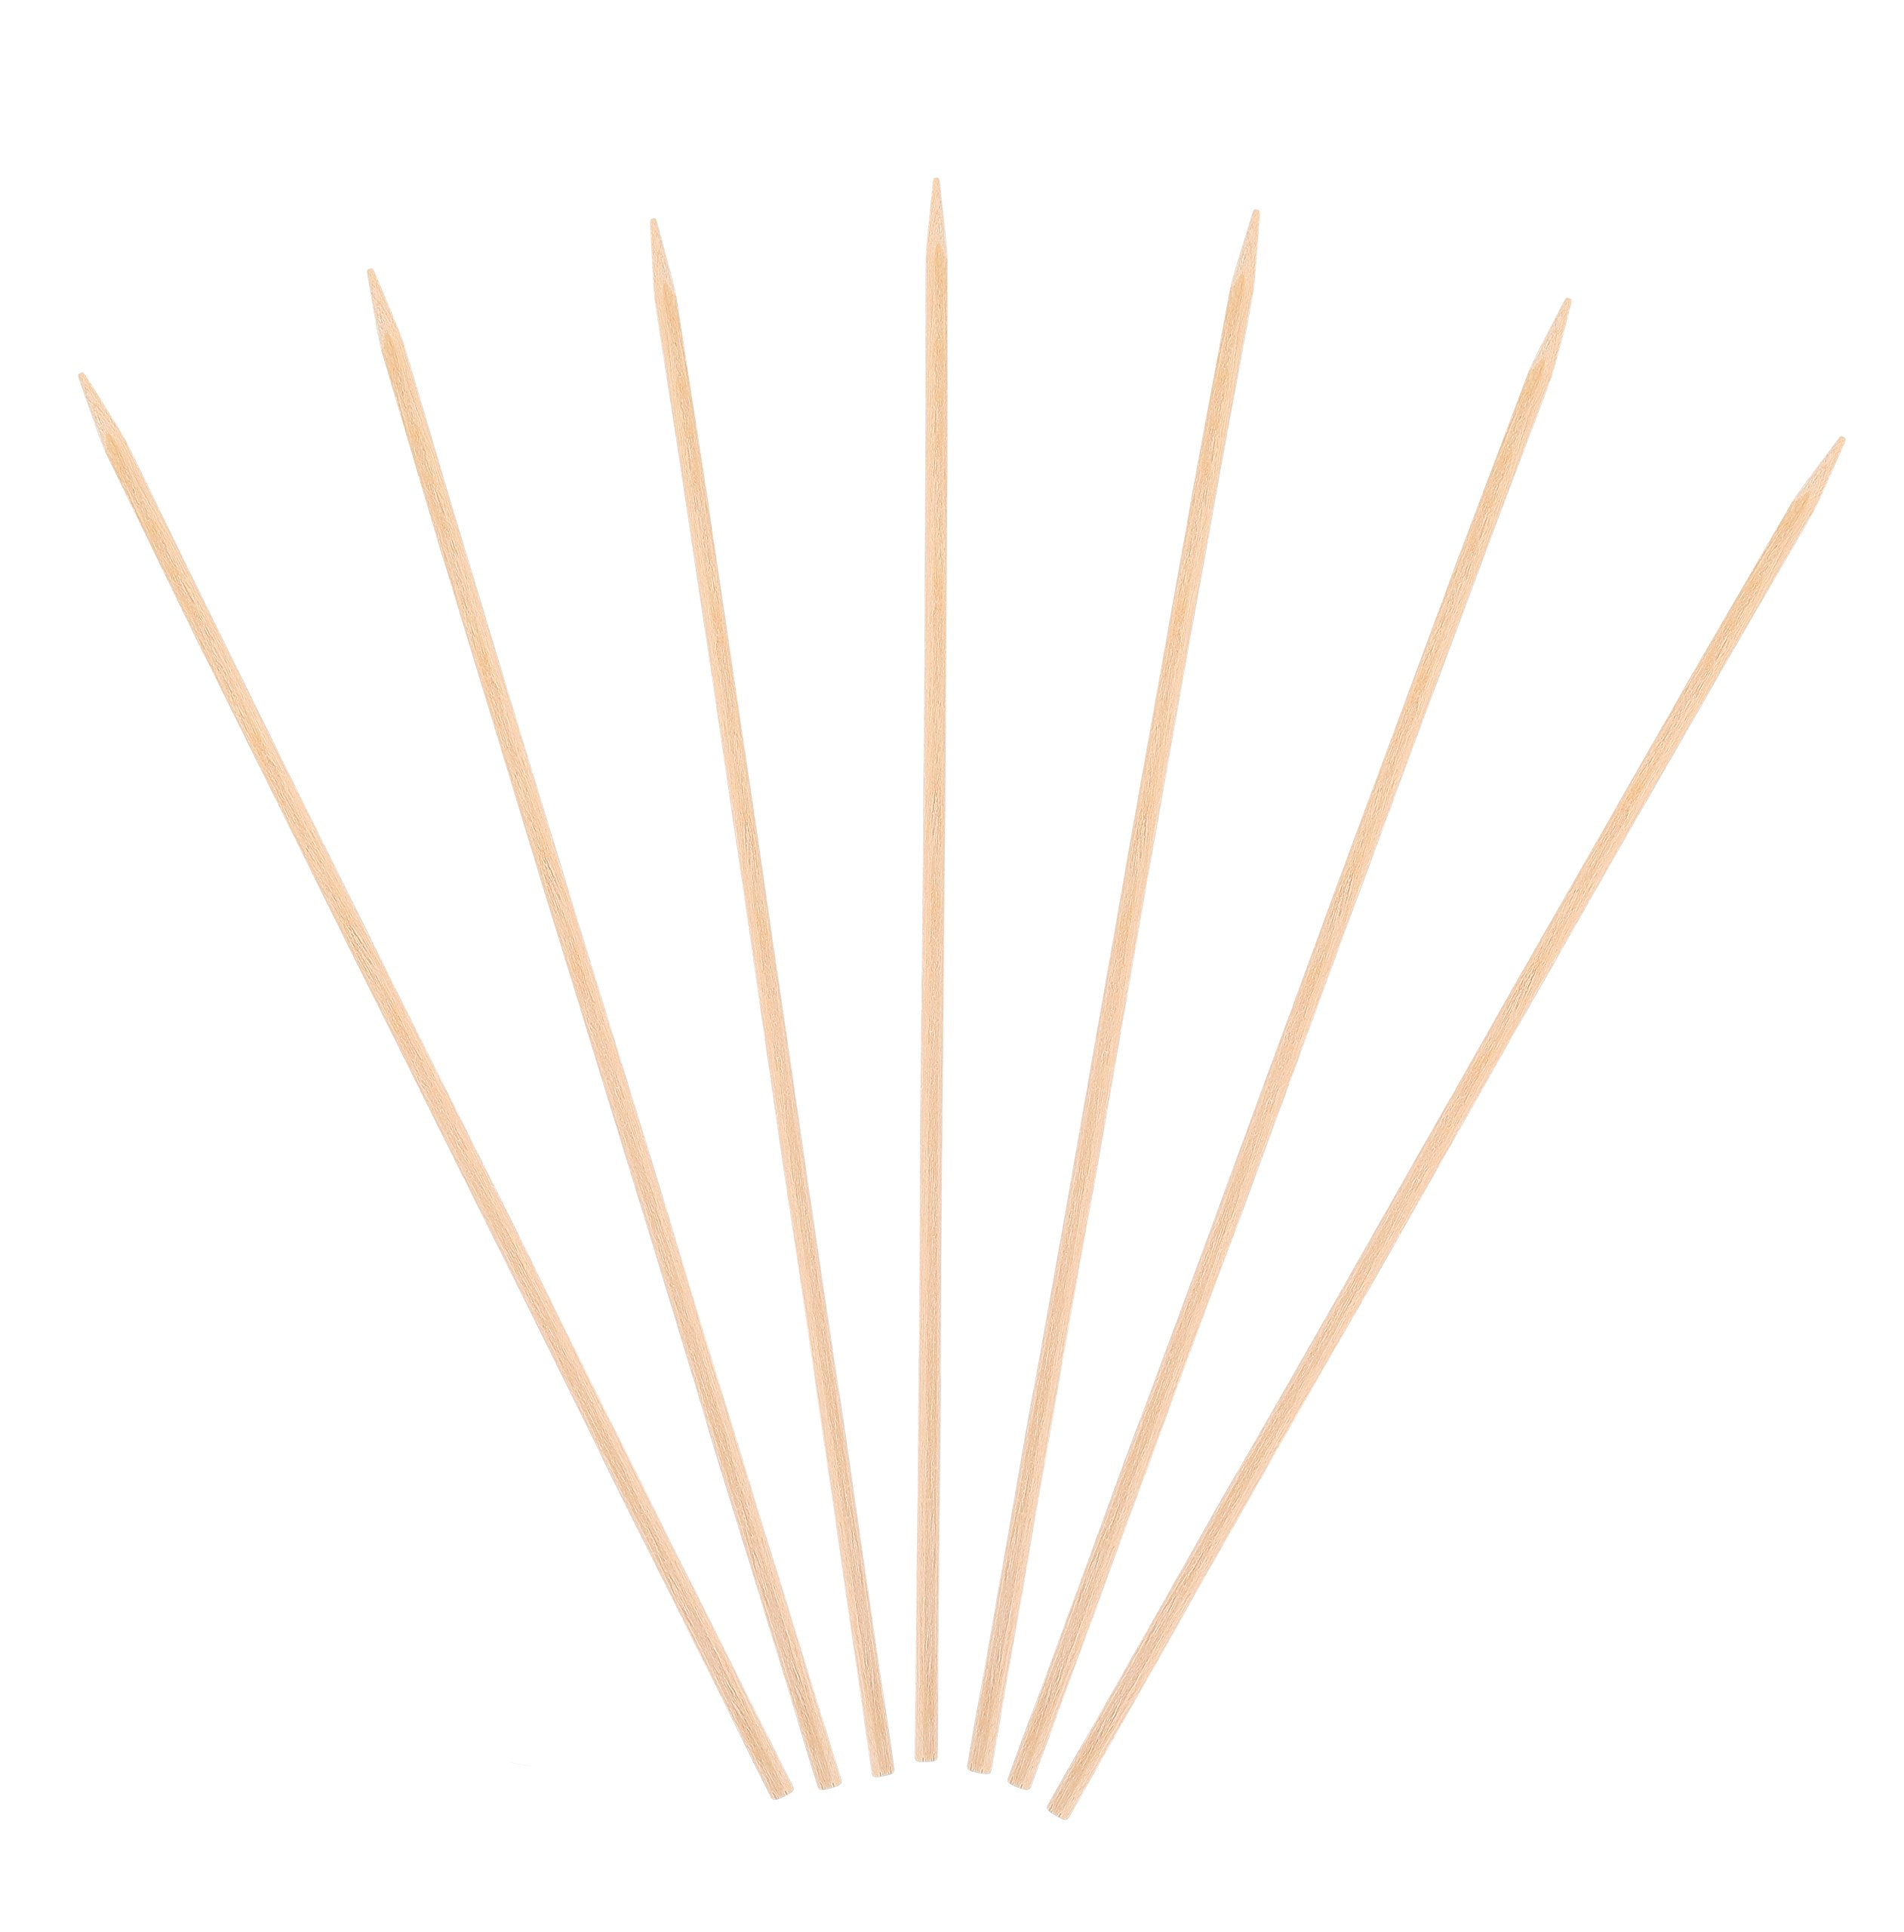 KingSeal Natural Birch Wood Skewers, Sticks - 10 Inches, 3.5mm diam, 1000 Count